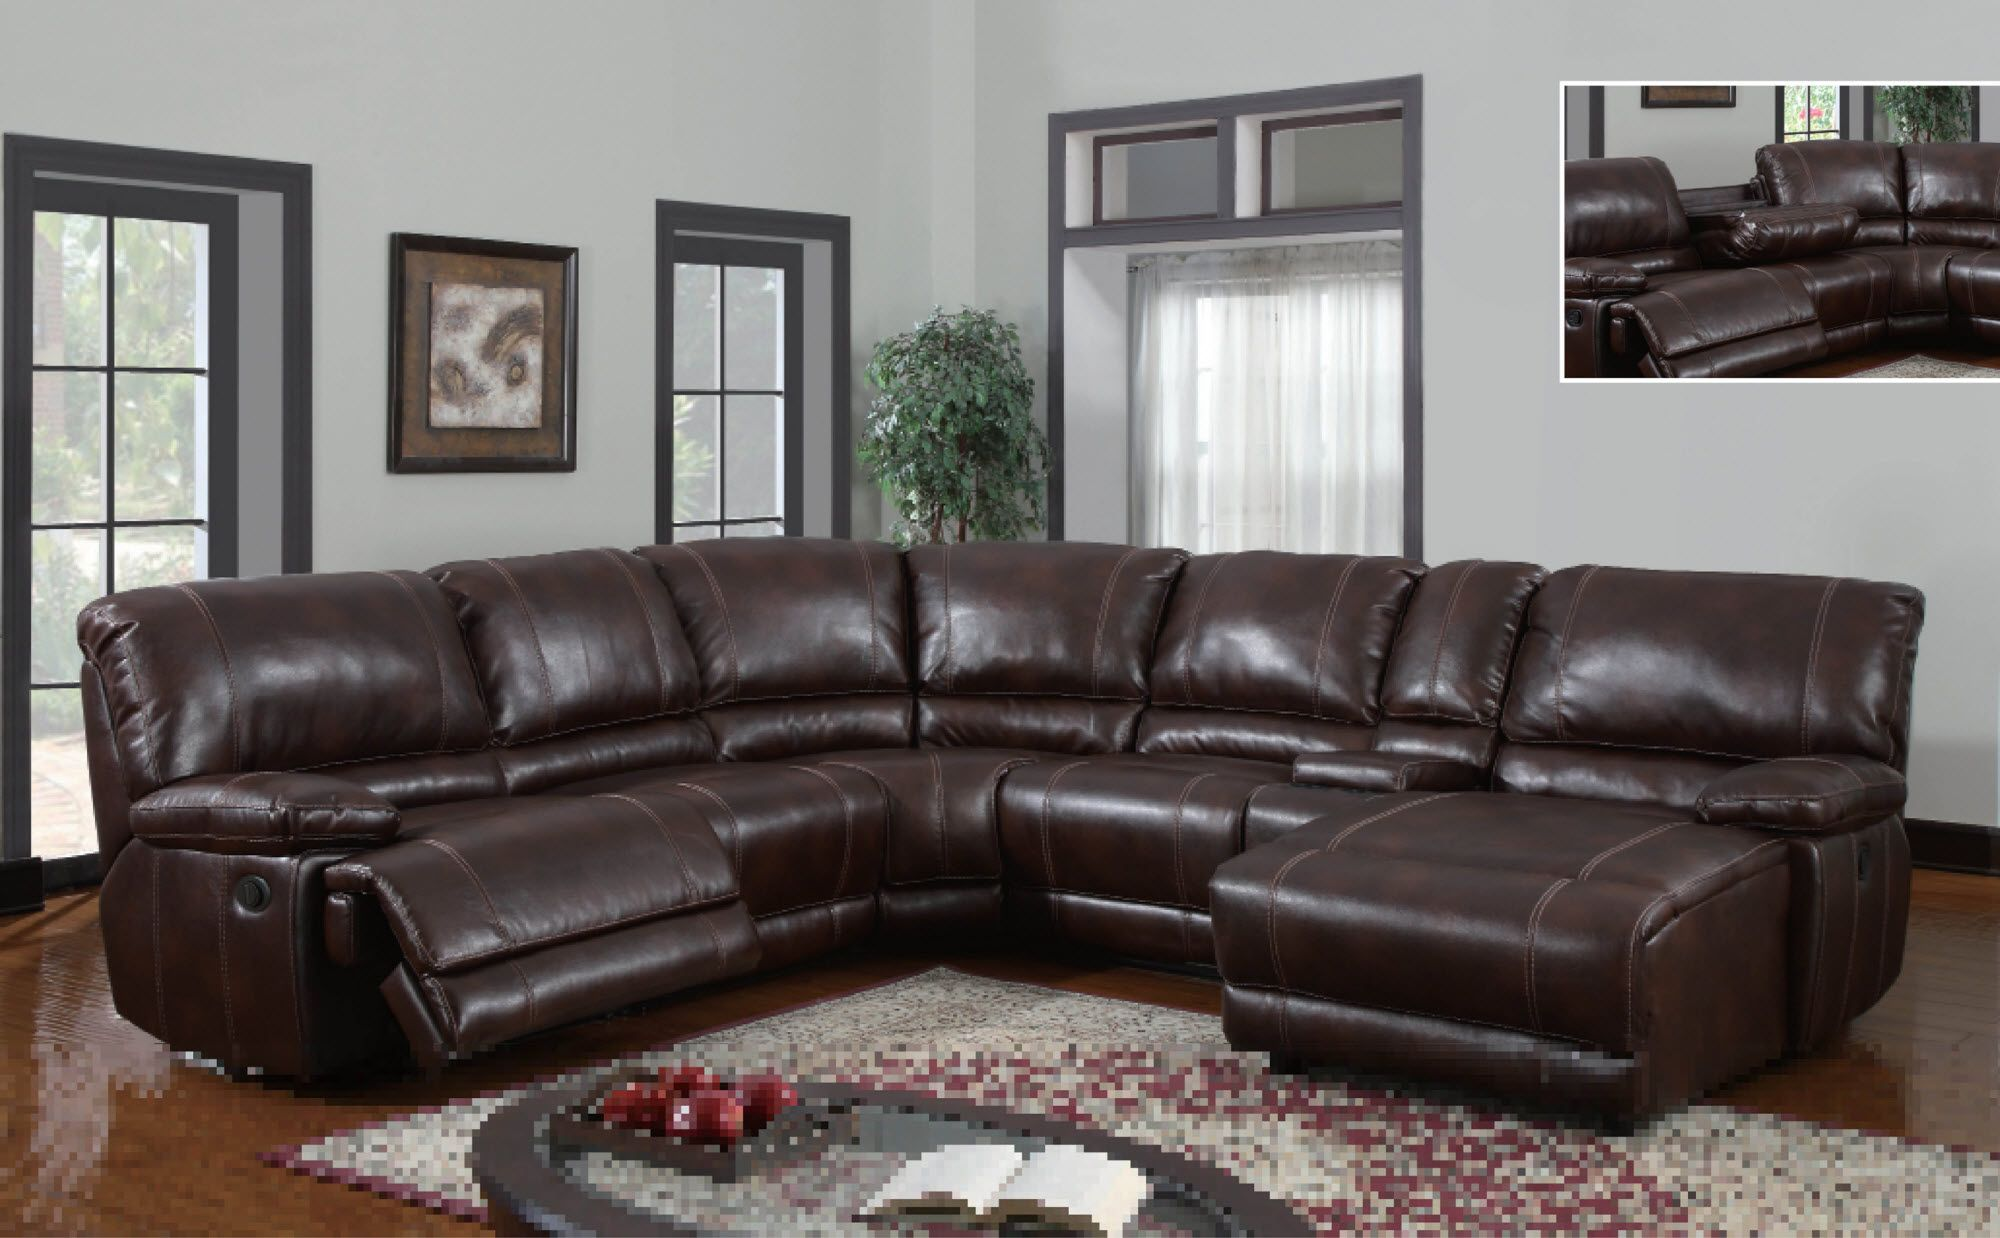 U1953 Global Furniture USA Sectional With Power Recliner And Chaise  Www.furnitureurban.com